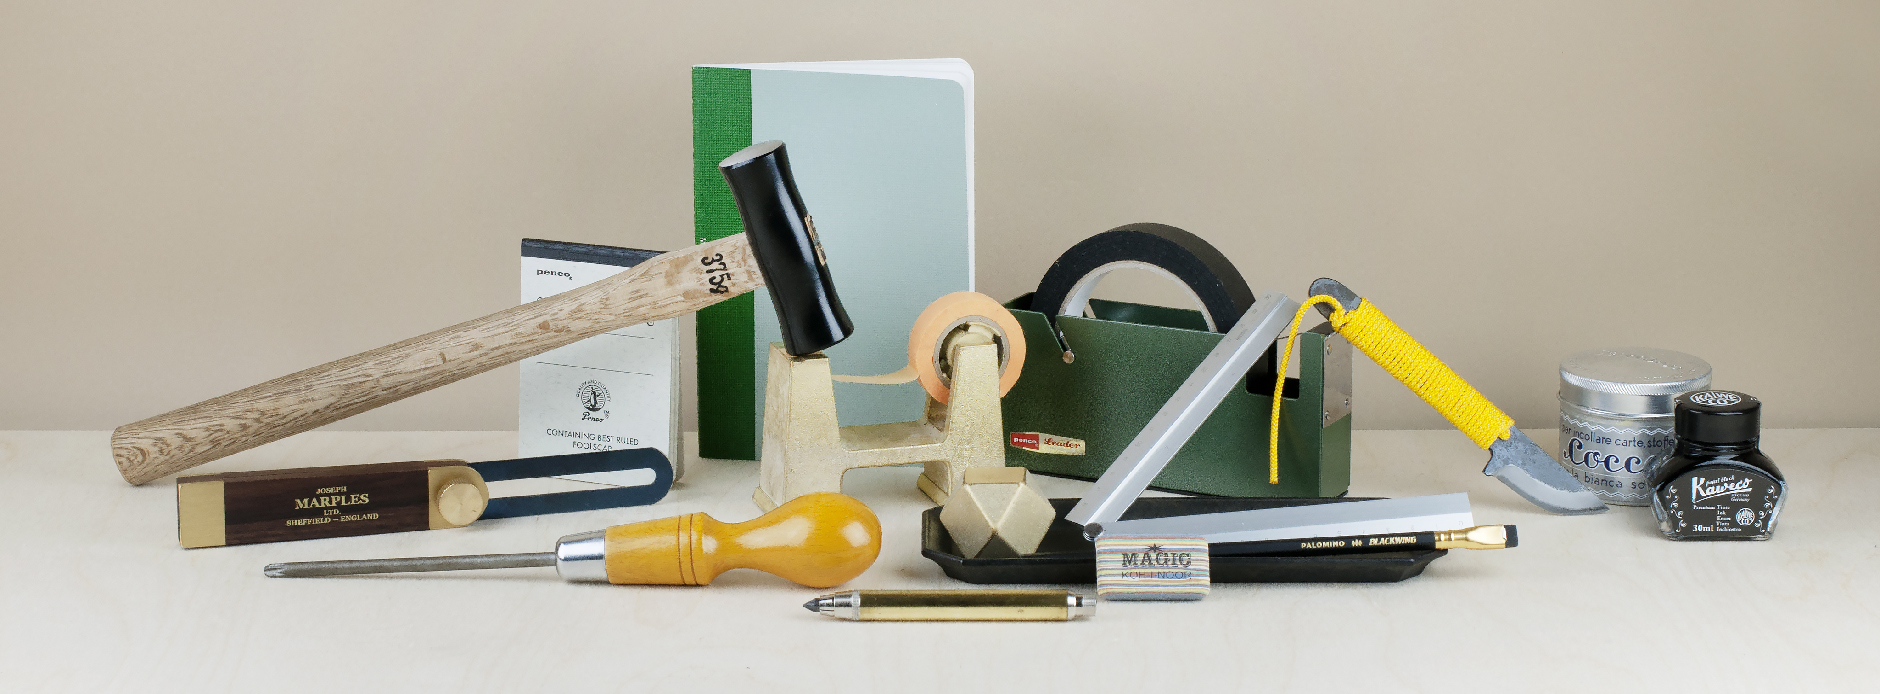 Archetypal objects of use in the office, in the study or library. Writing implements, study aids, tools for household repair, construction and fabrication